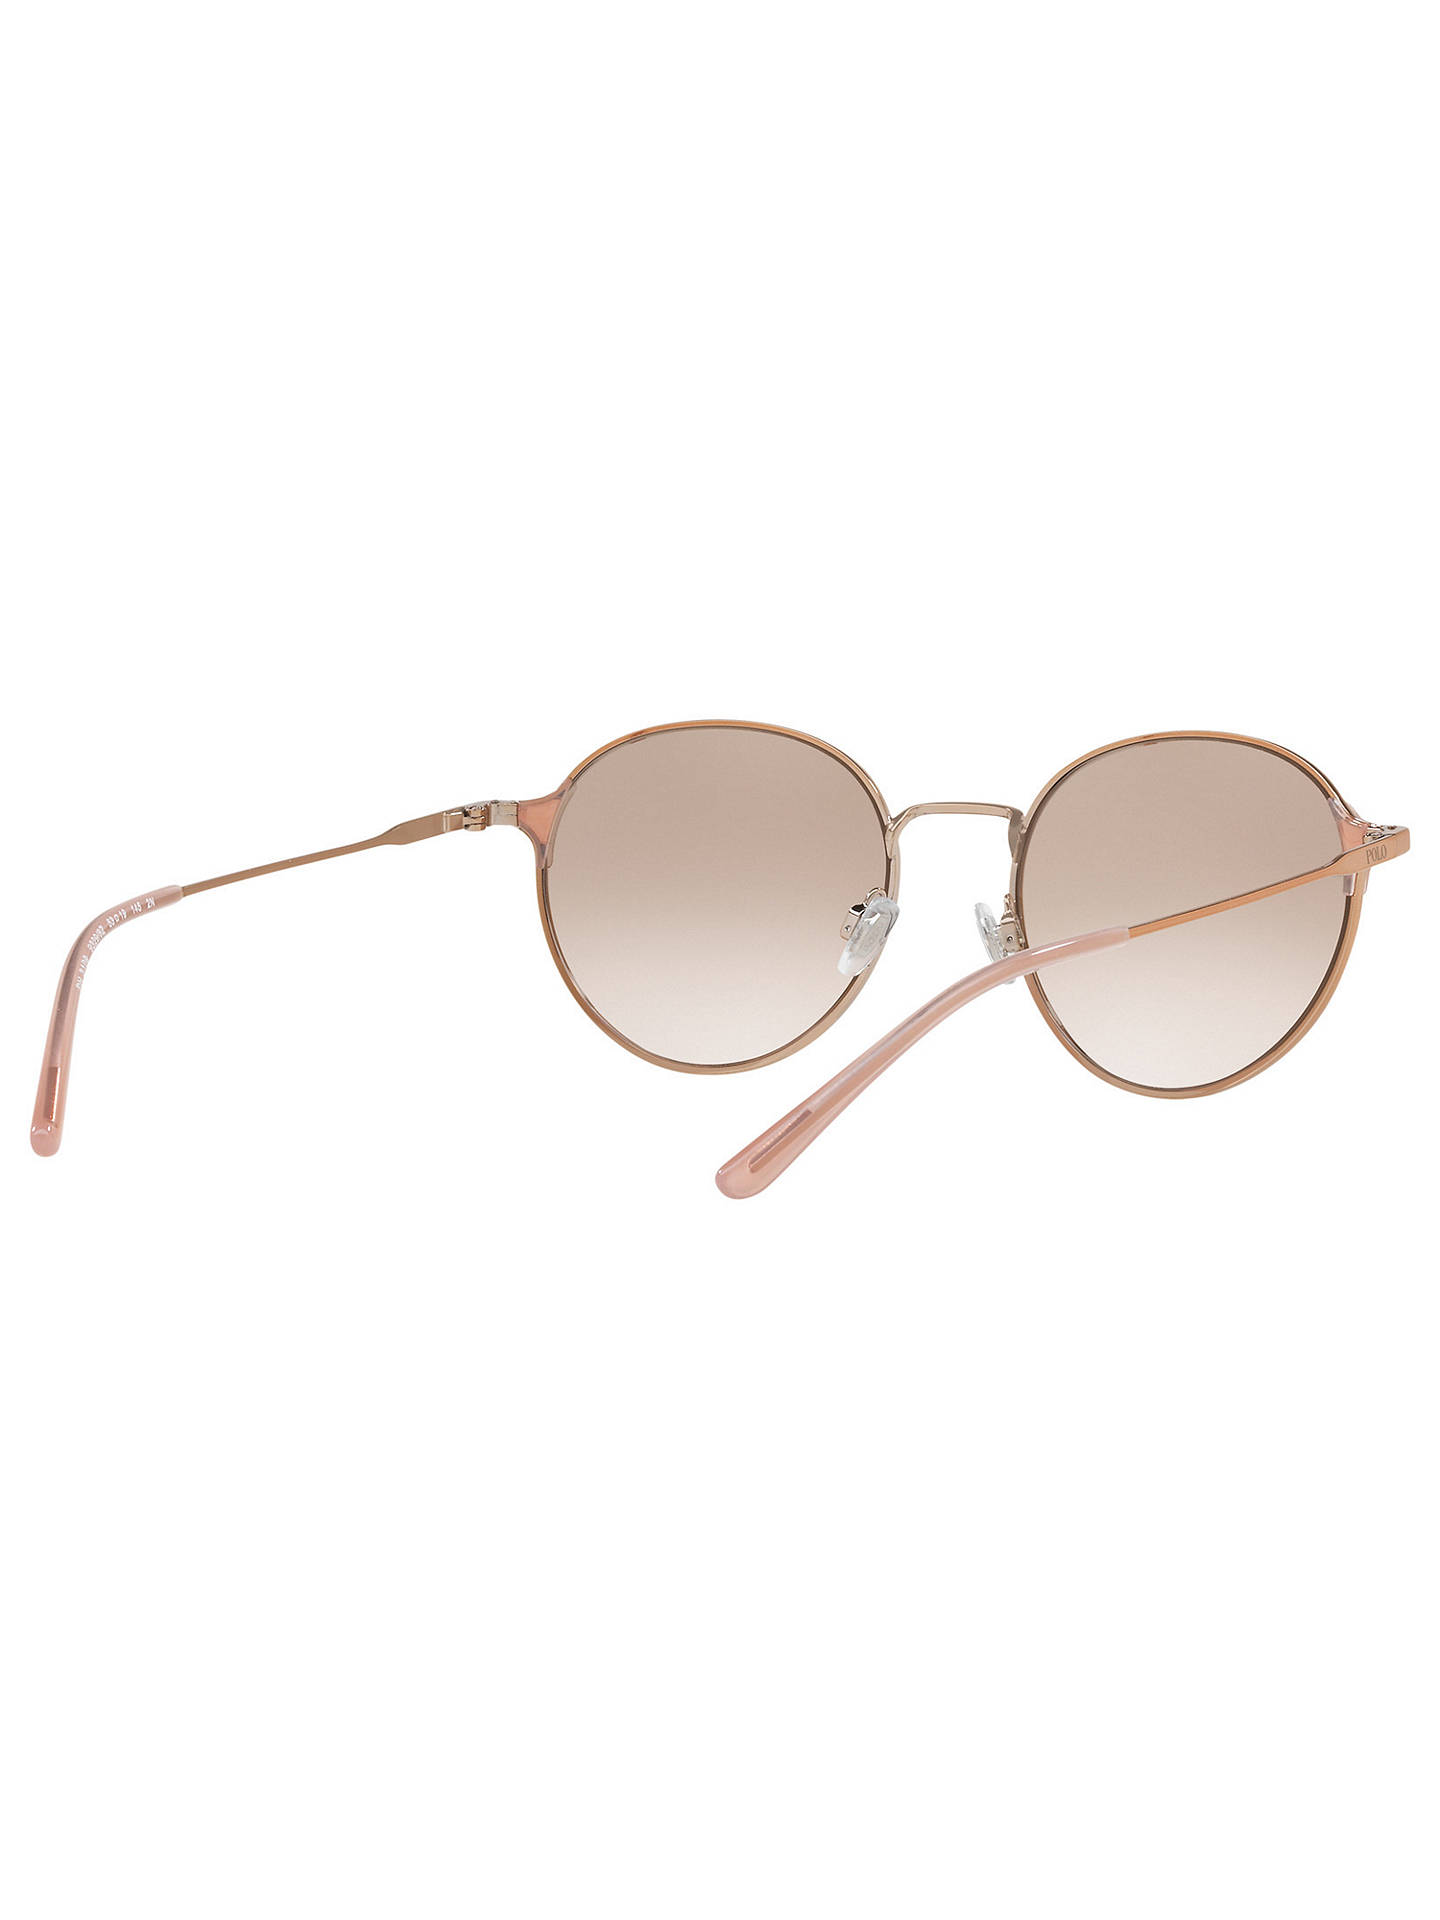 BuyPolo Ralph Lauren PH3109 Oval Sunglasses, Rose Gold/Mirror Lilac Online at johnlewis.com